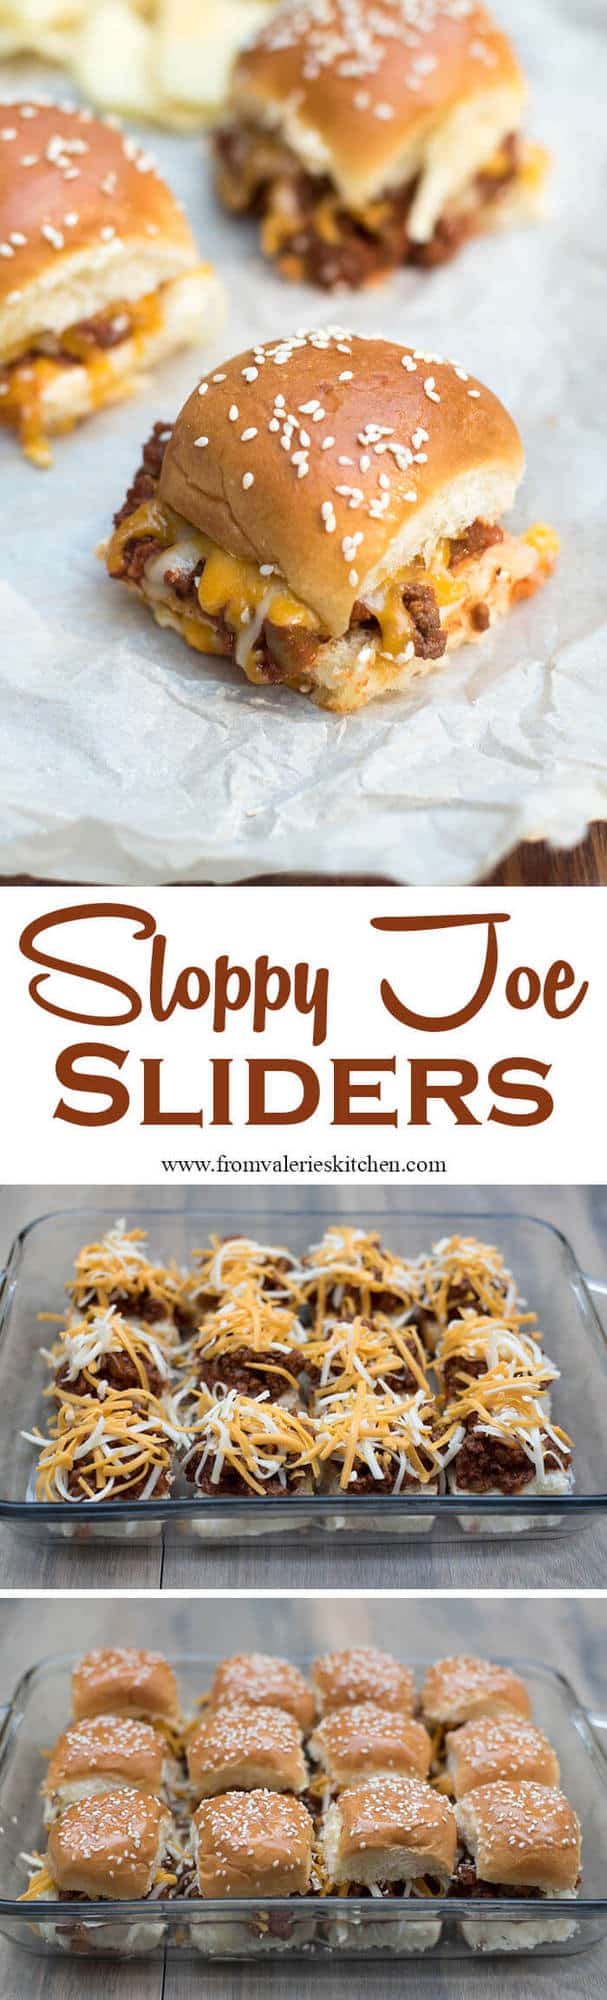 A three image vertical collage of sloppy joe sliders with text overlay.